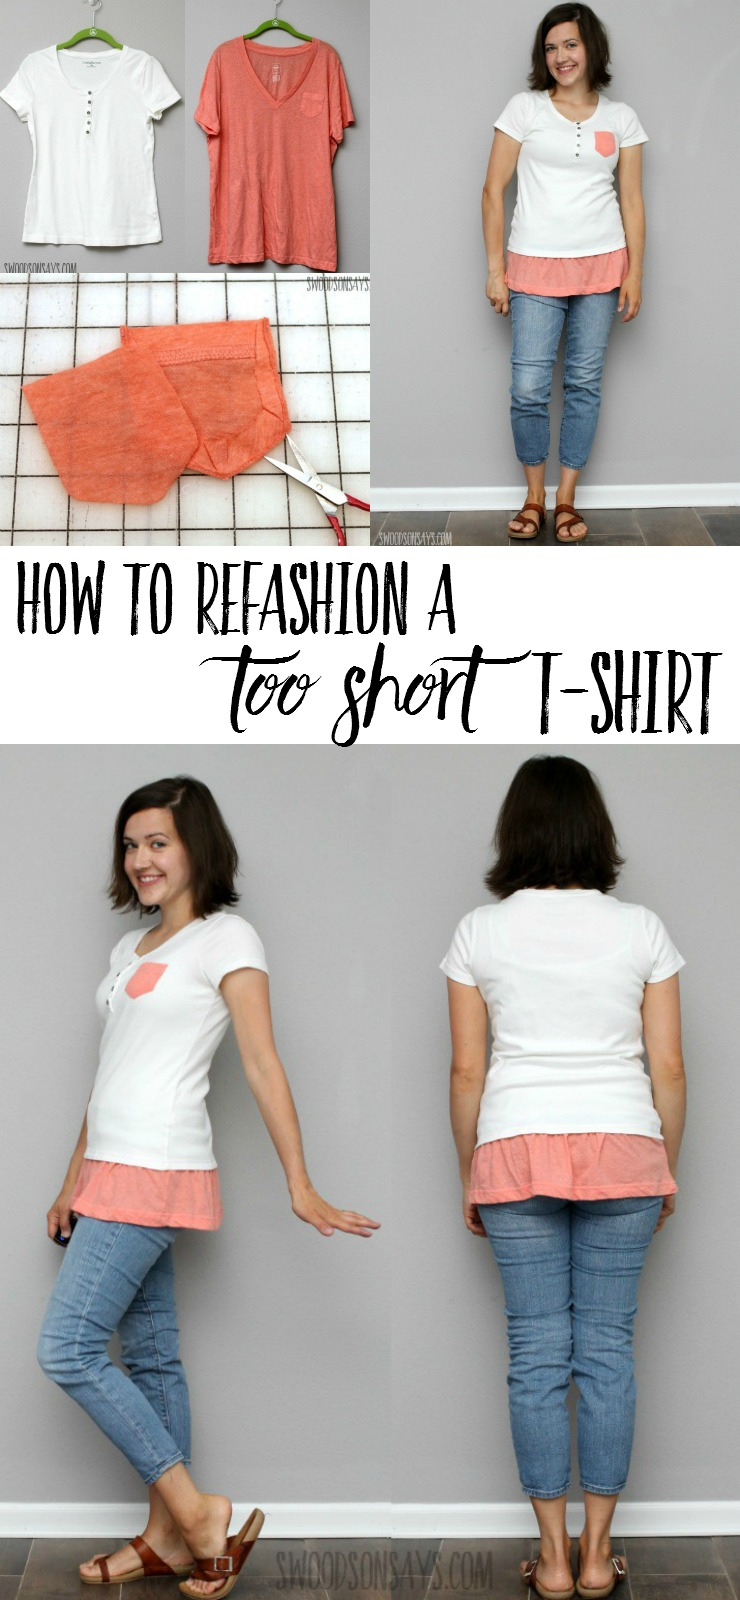 See how to refashion a tshirt that is too short! This easy tshirt refashion idea combines too looks for a fresh new take.